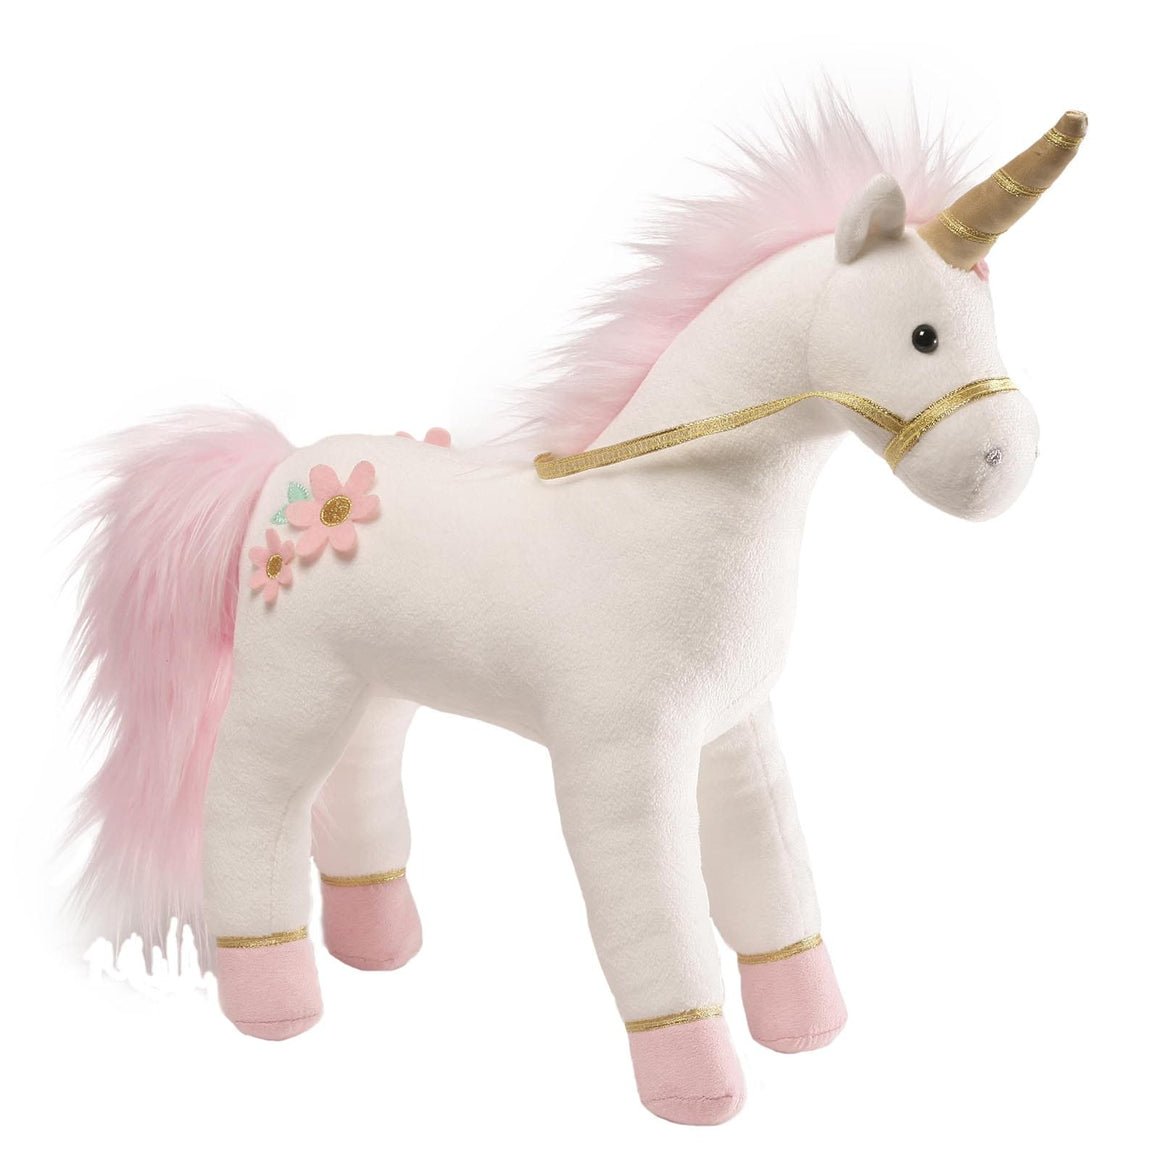 LilyRose Pink Unicorn Large Soft Toy by Gund